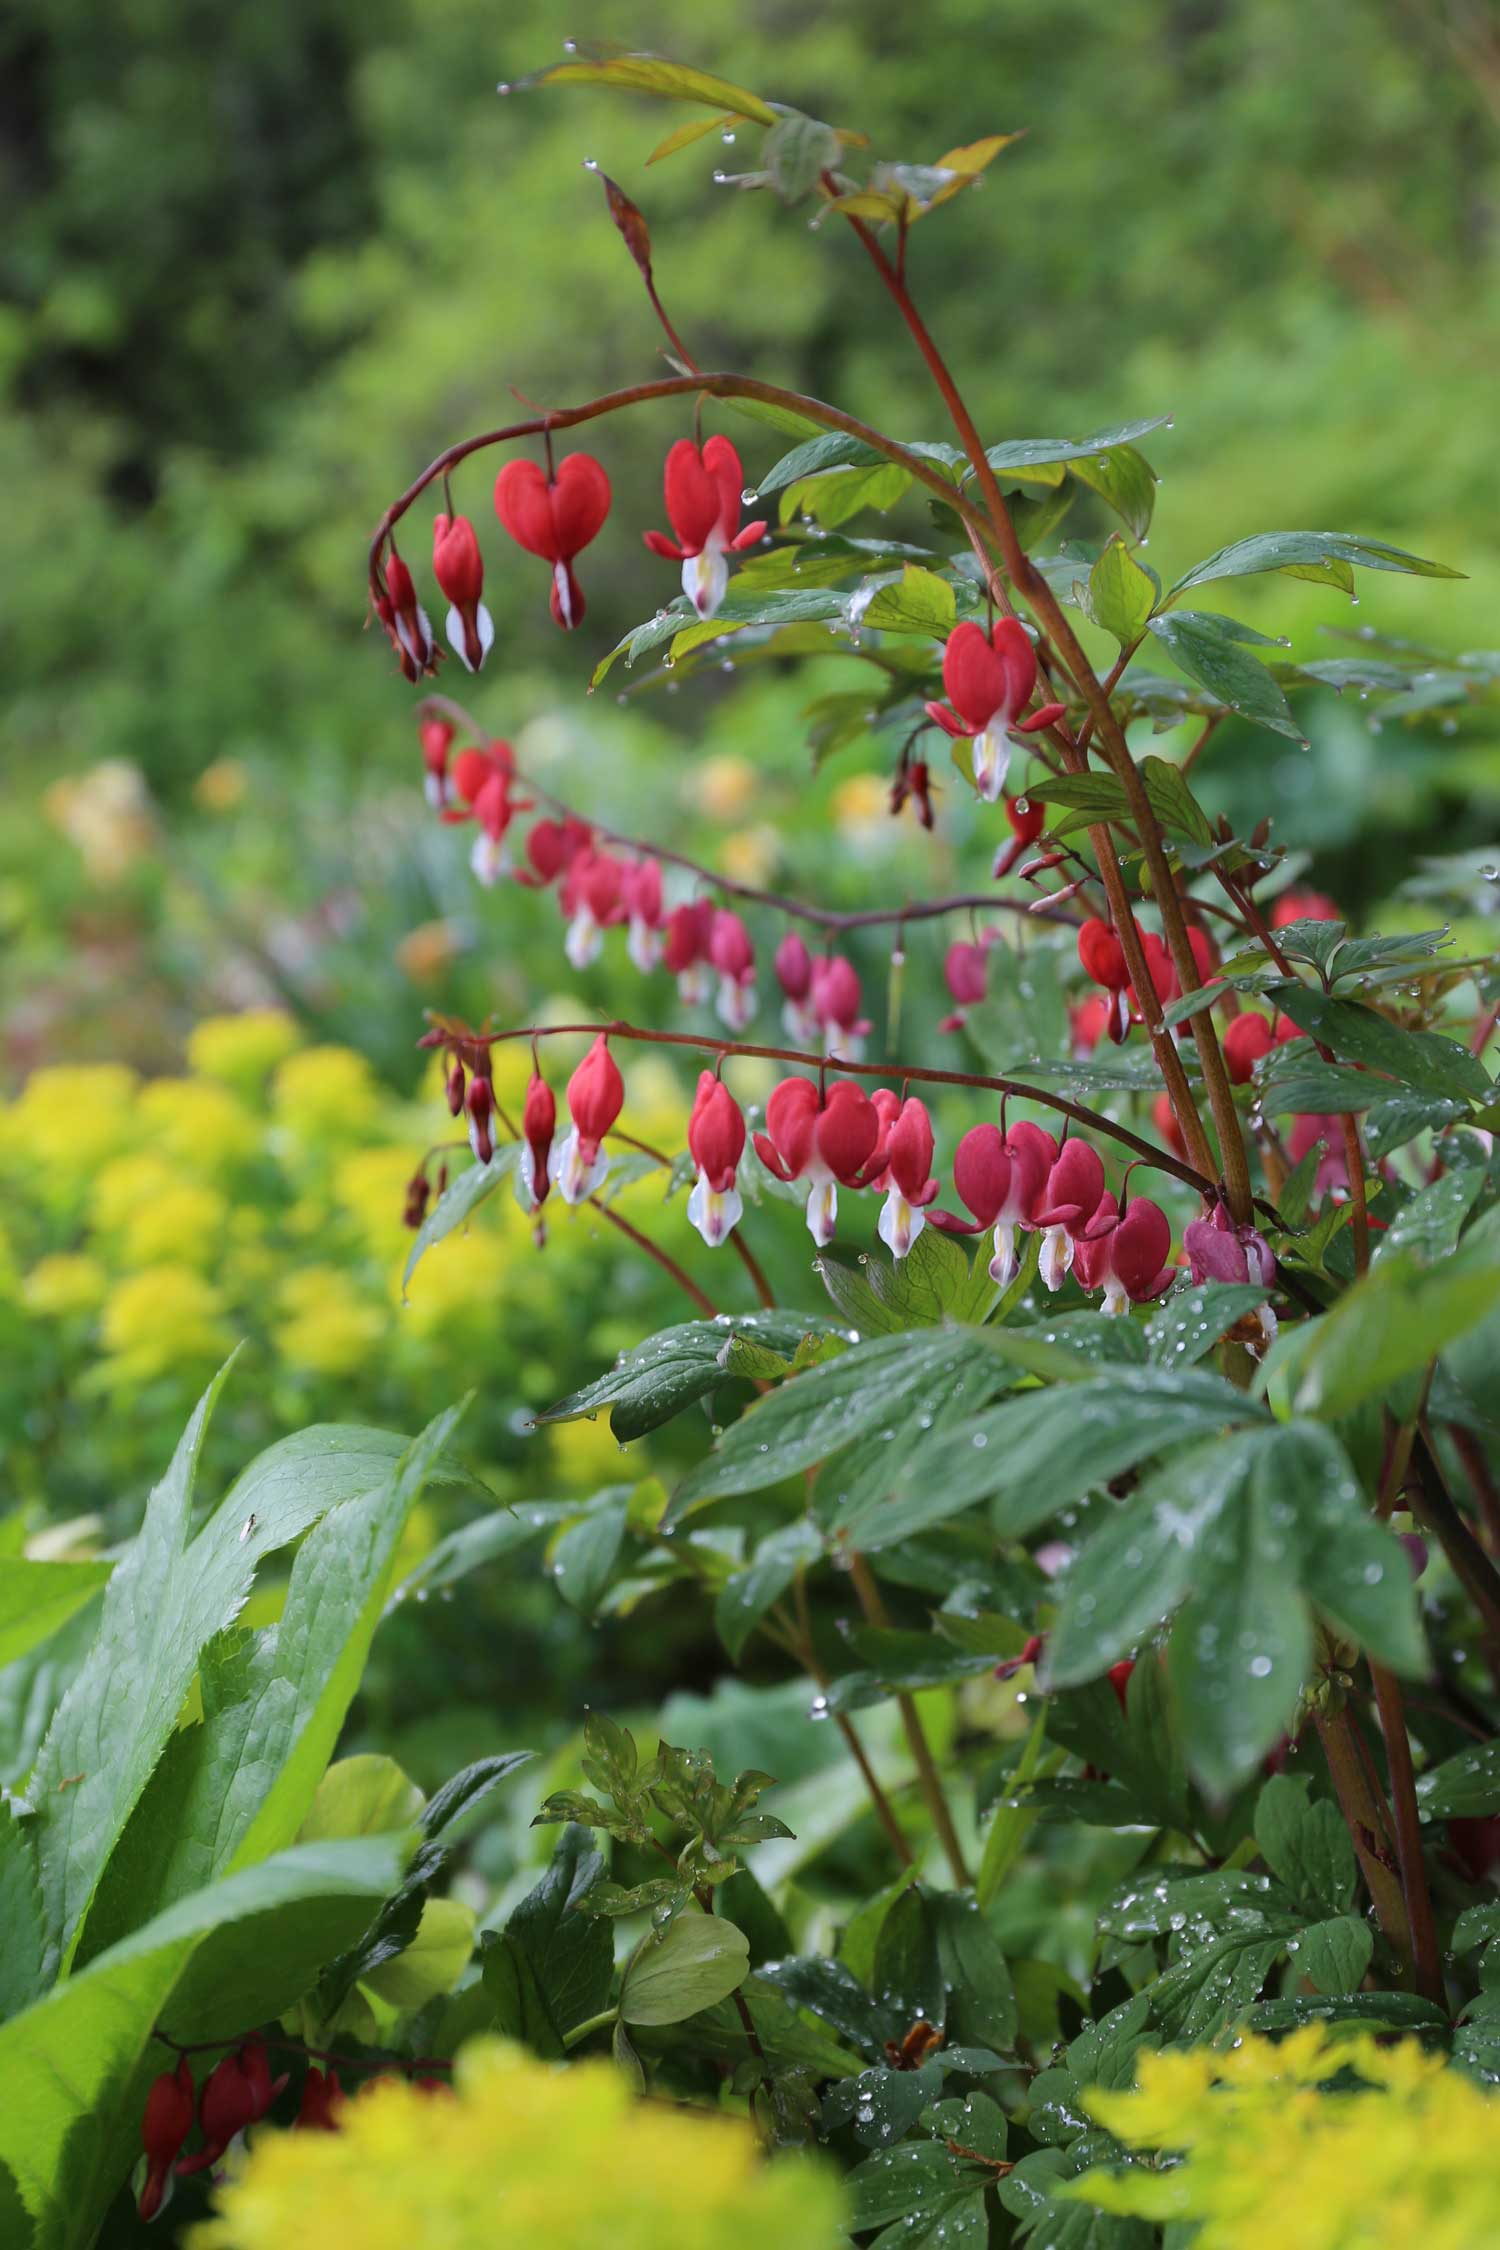 dicentra-best-companion-plants-for-hostas - Longfield Gardens